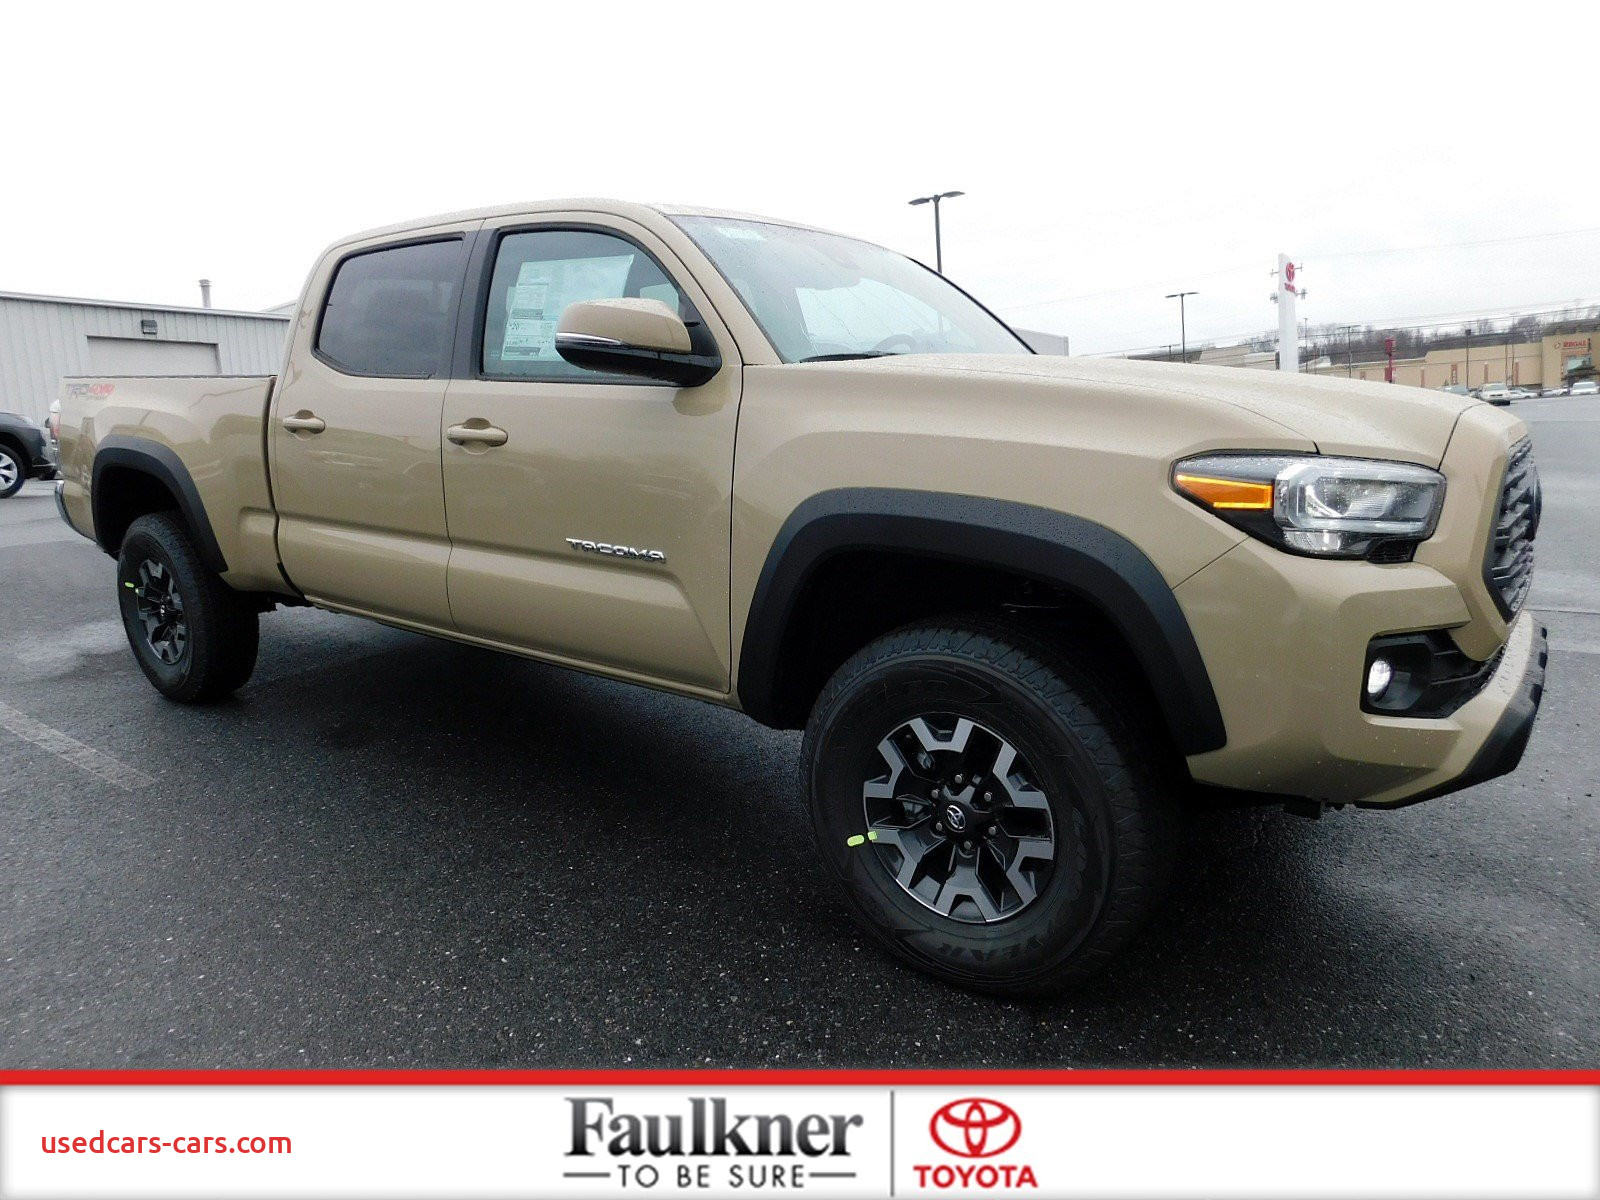 Tacoma Double Cab Long Bed Luxury New 2020 toyota Ta A Trd F Road Double Cab 6 Bed V6 at Natl